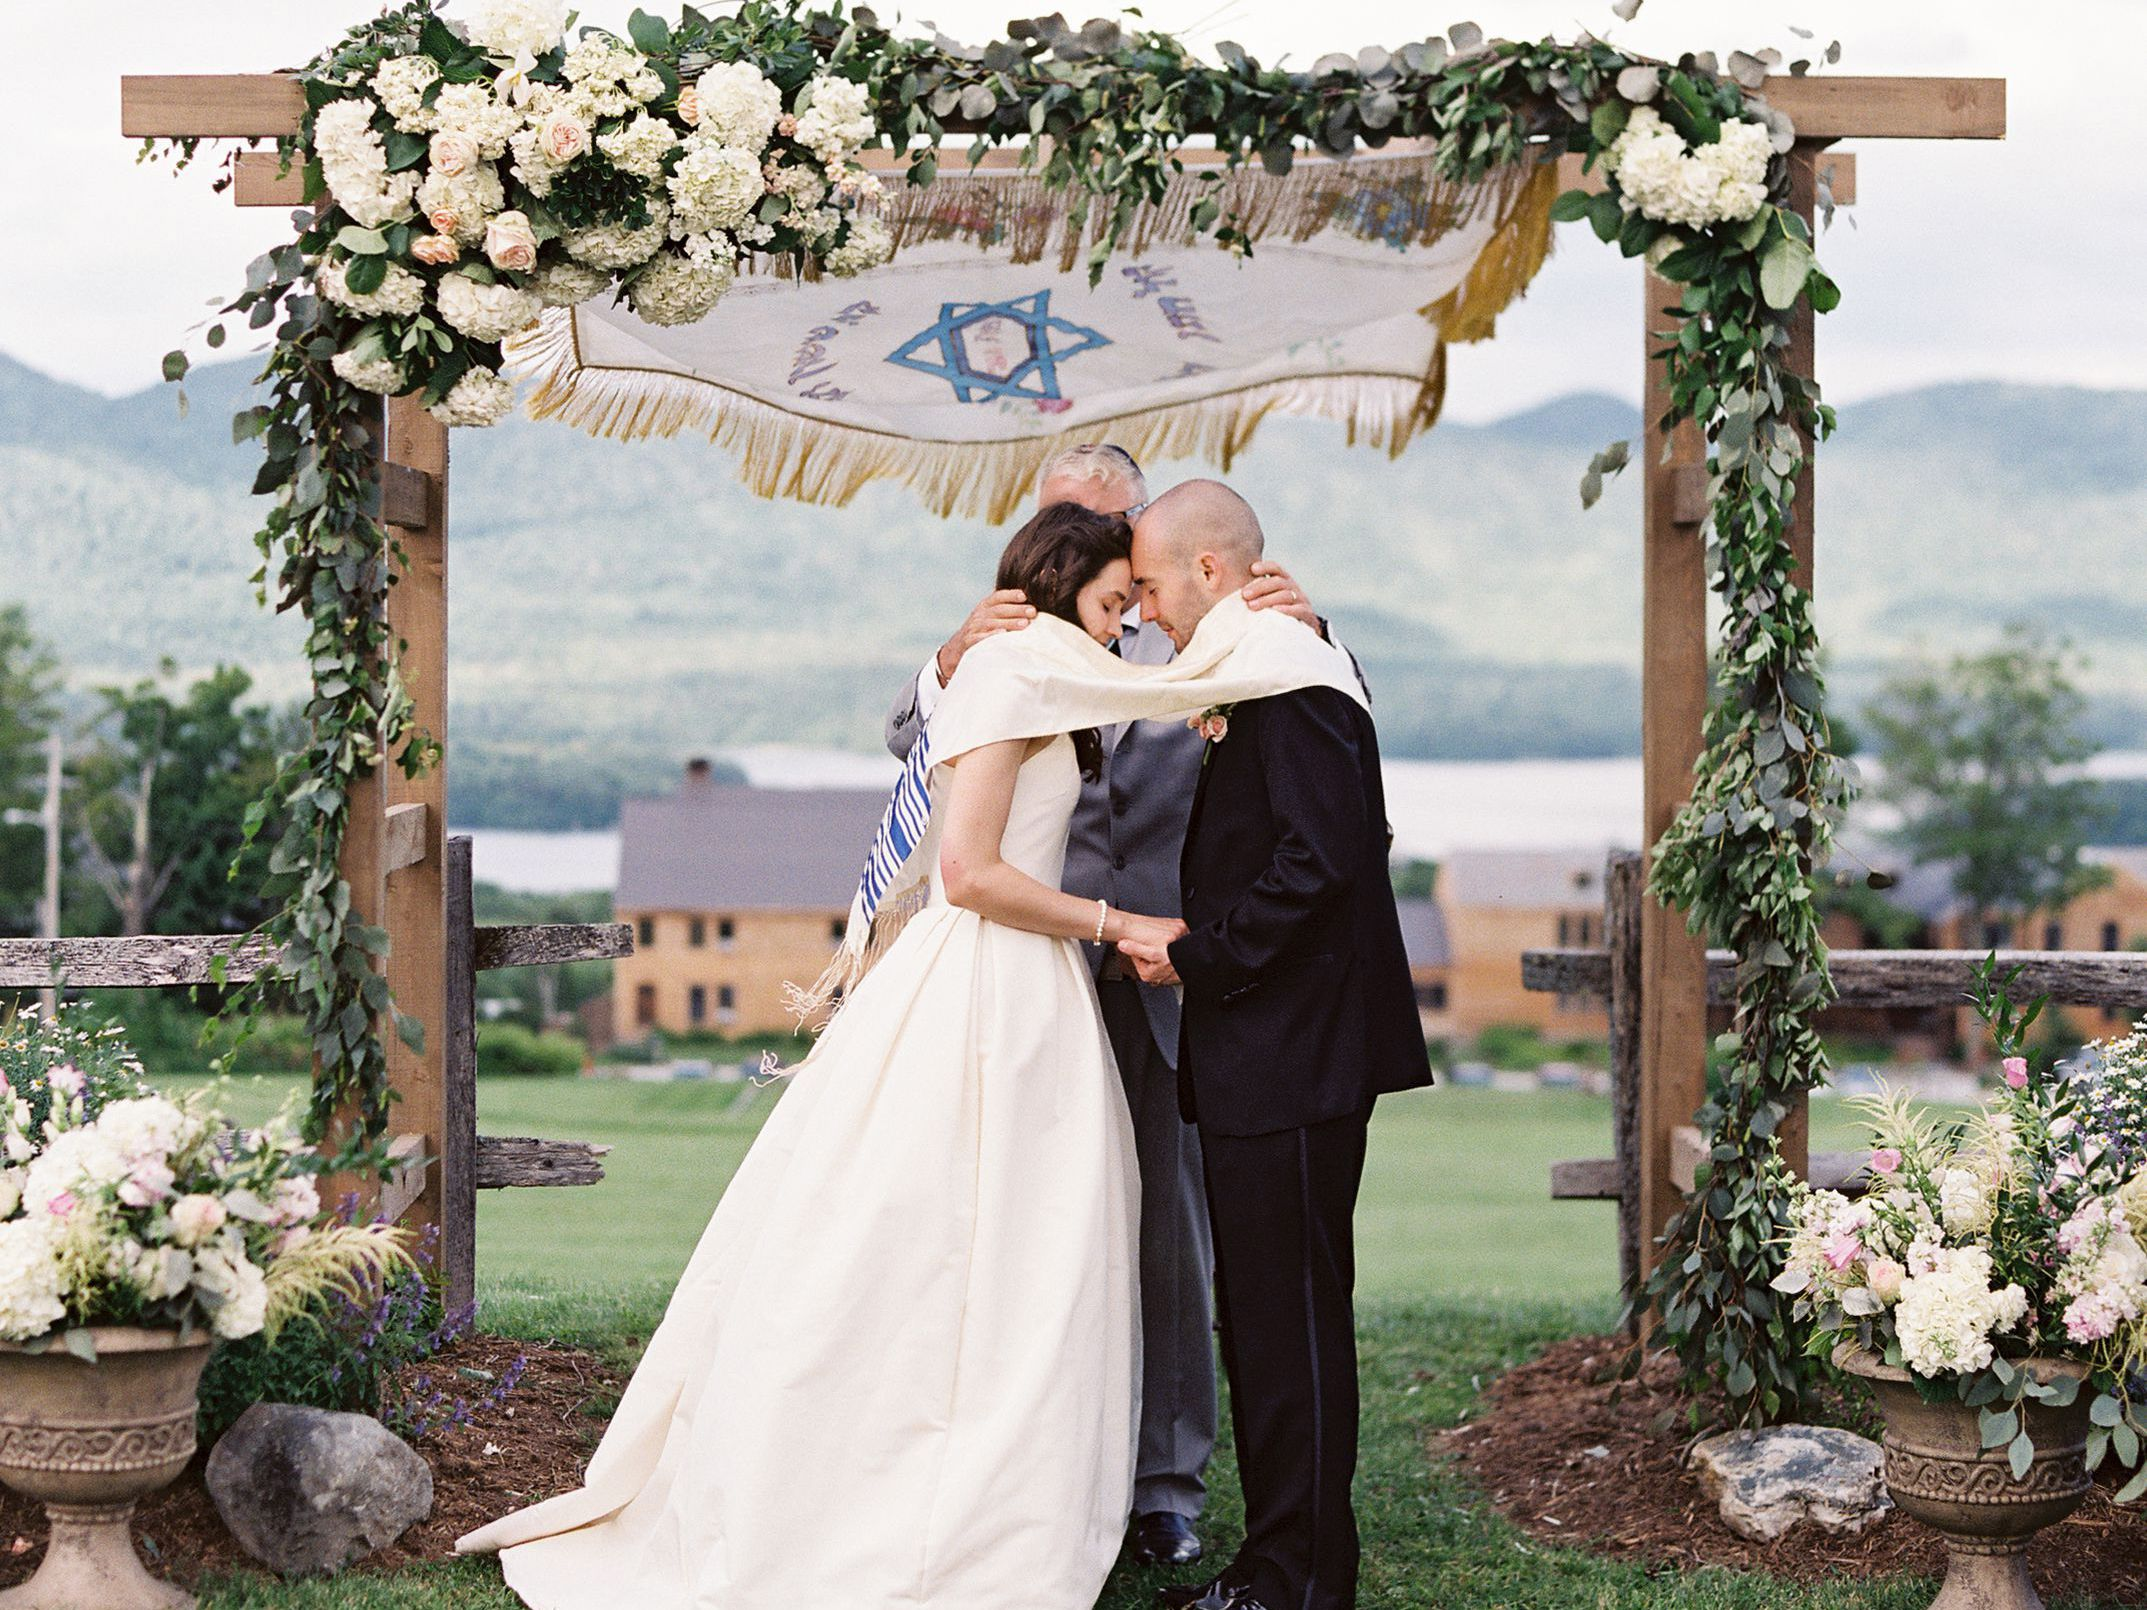 13 Jewish Wedding Traditions And Rituals You Need To Know